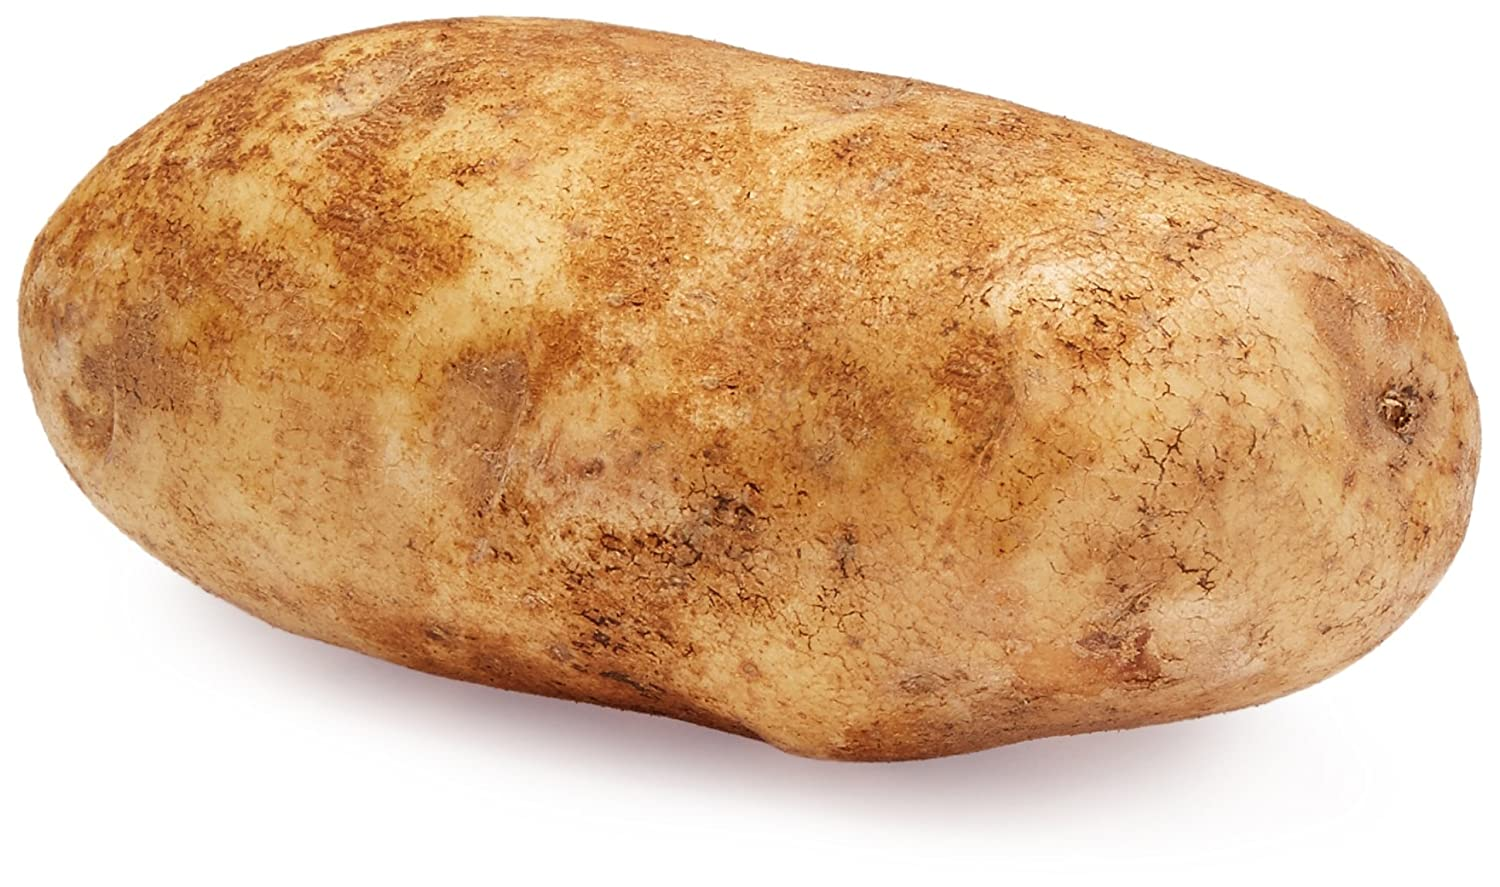 russet potato one large amazon com grocery gourmet food